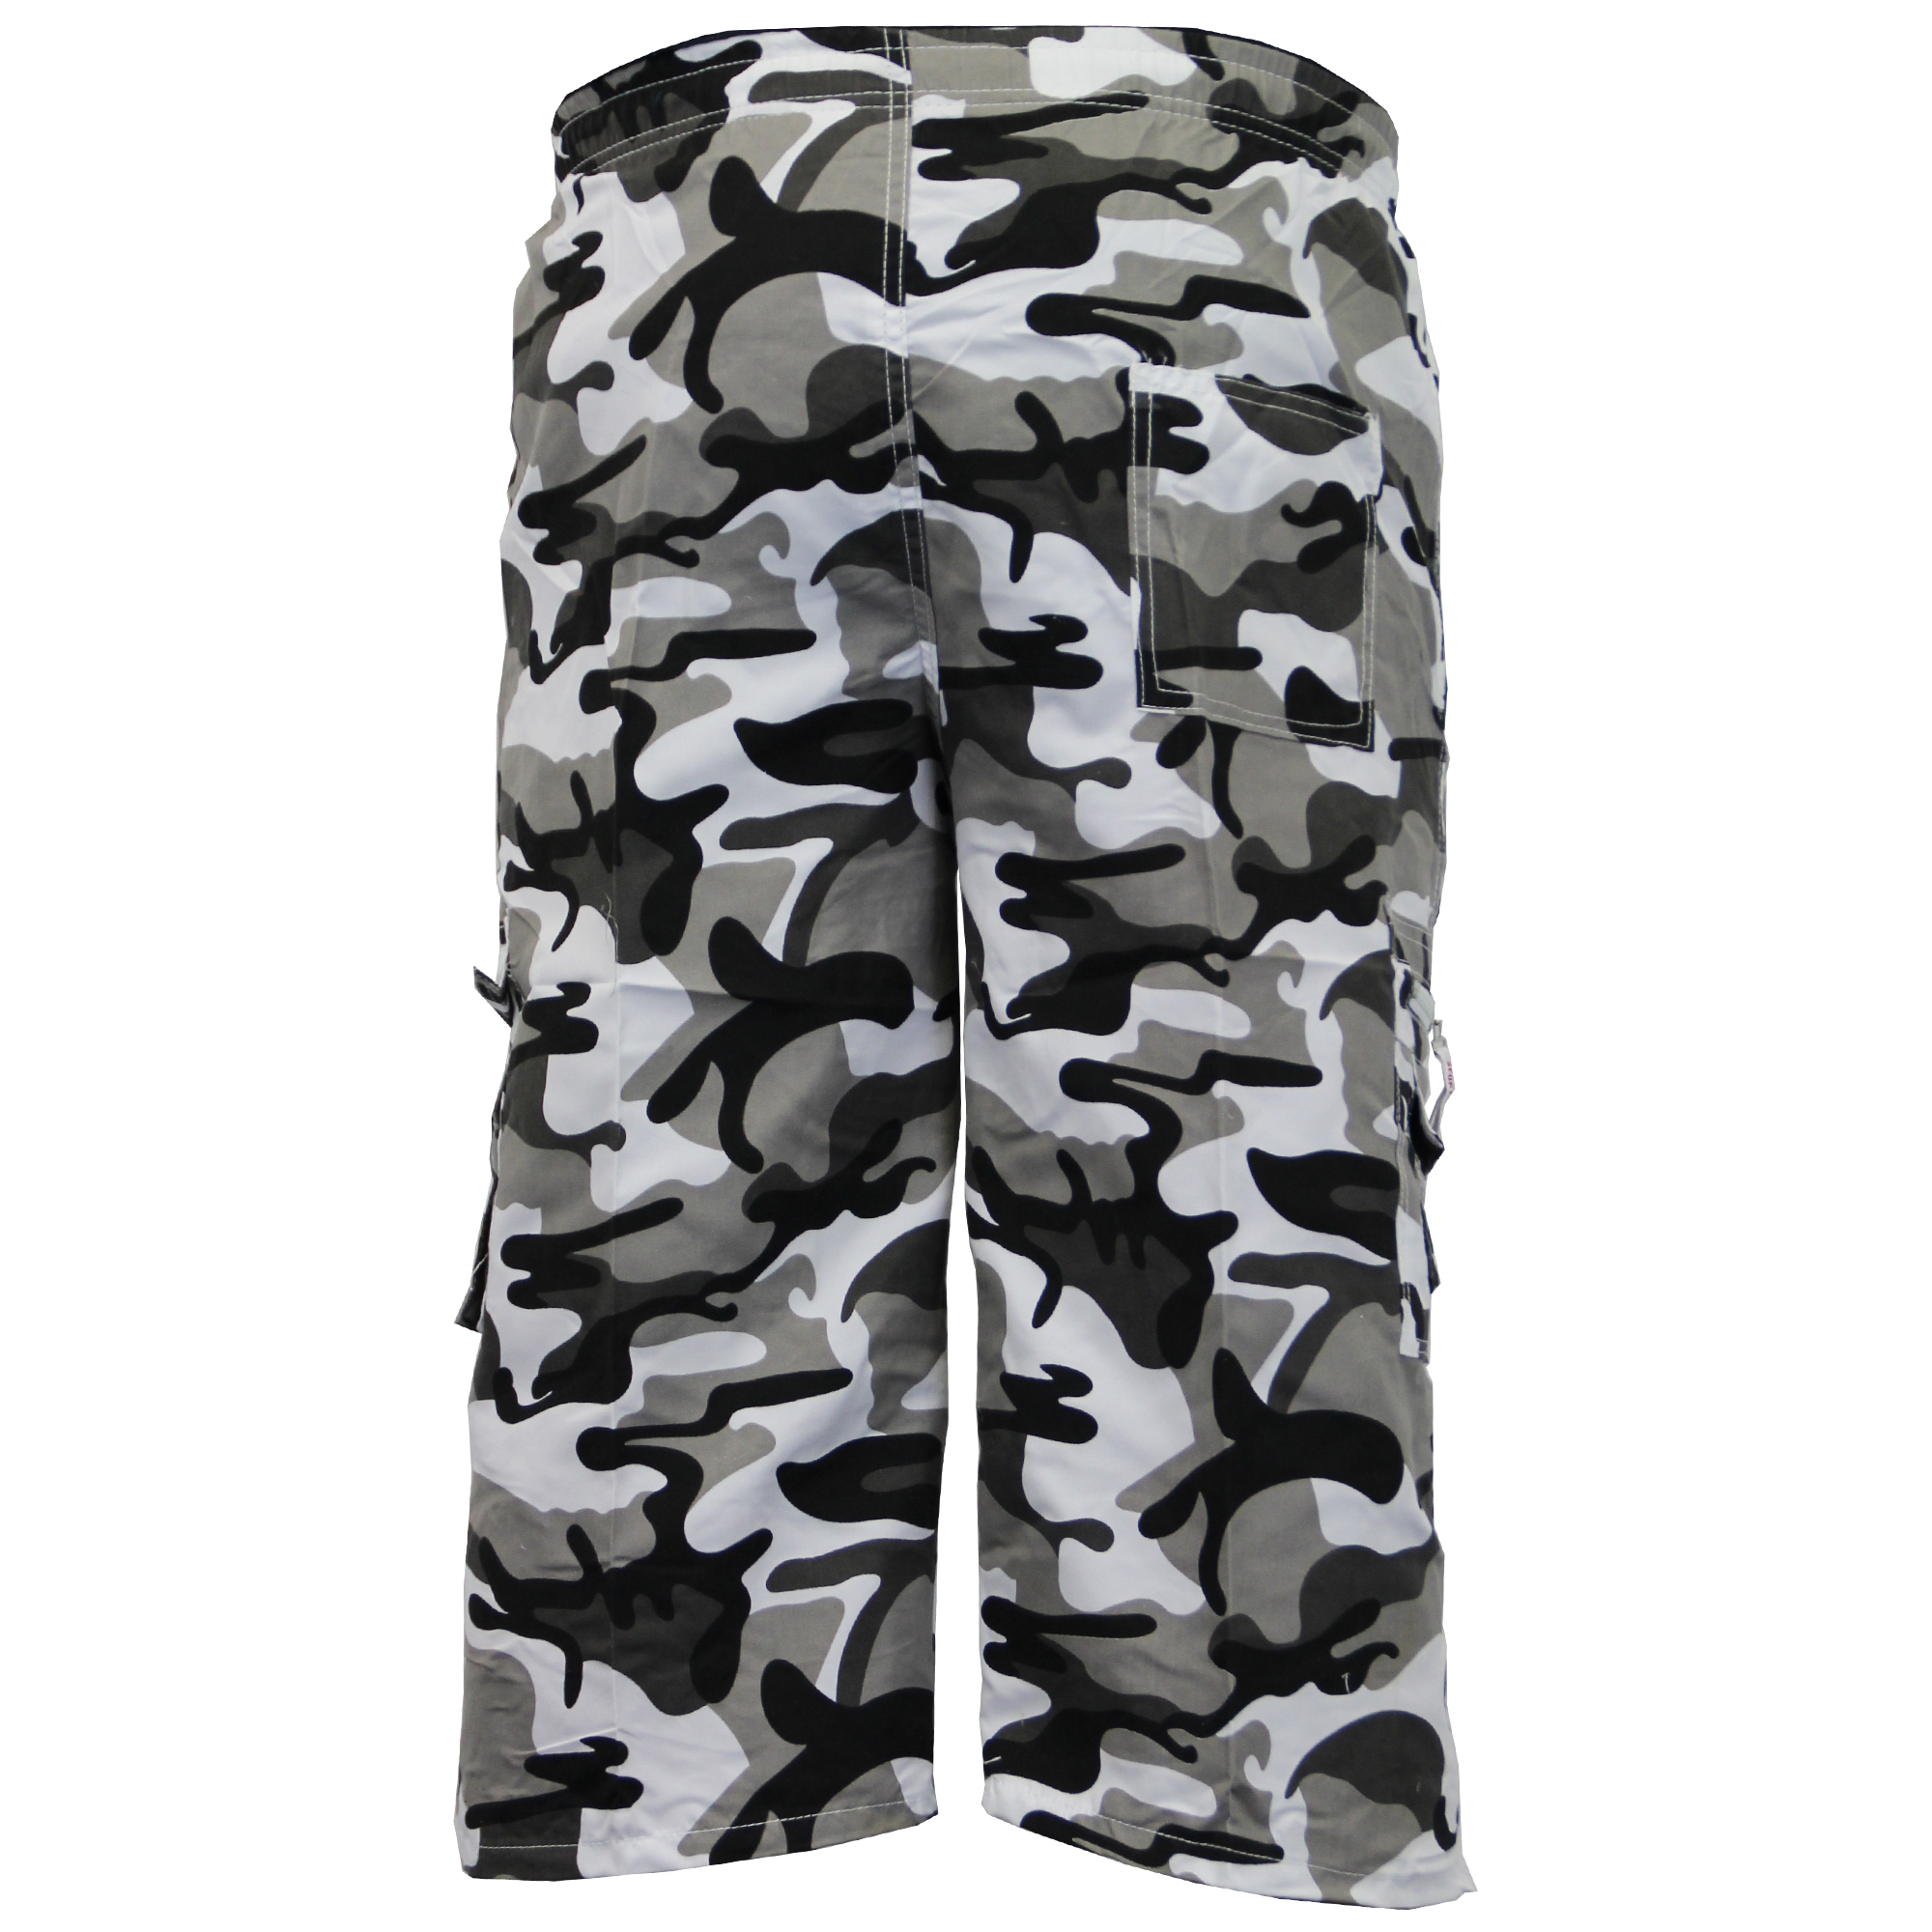 Mens-Camouflage-Combat-Cargo-Shorts-3-4-Length-Army-Military-Sports-Summer-New thumbnail 15